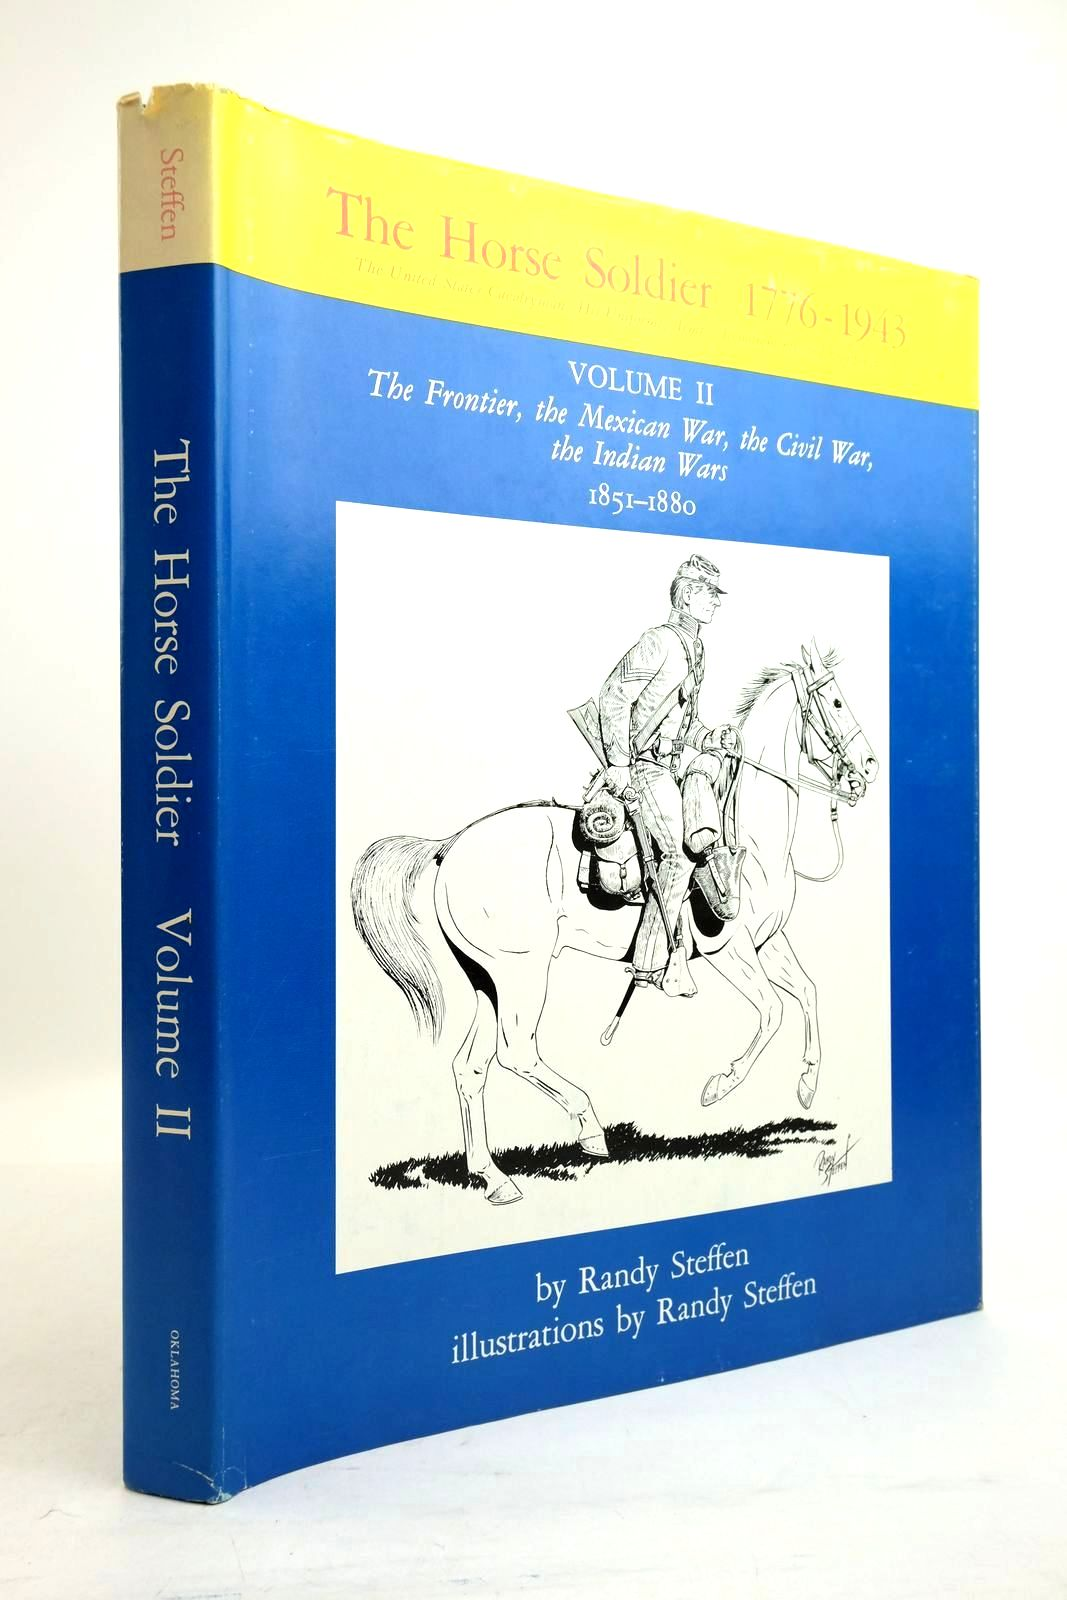 Photo of THE HORSE SOLDIER 1776-1943: VOLUME II: THE FRONTIER, THE MEXICAN WAR, THE CIVIL WAR, THE INDIAN WARS 1851-1880- Stock Number: 2134514